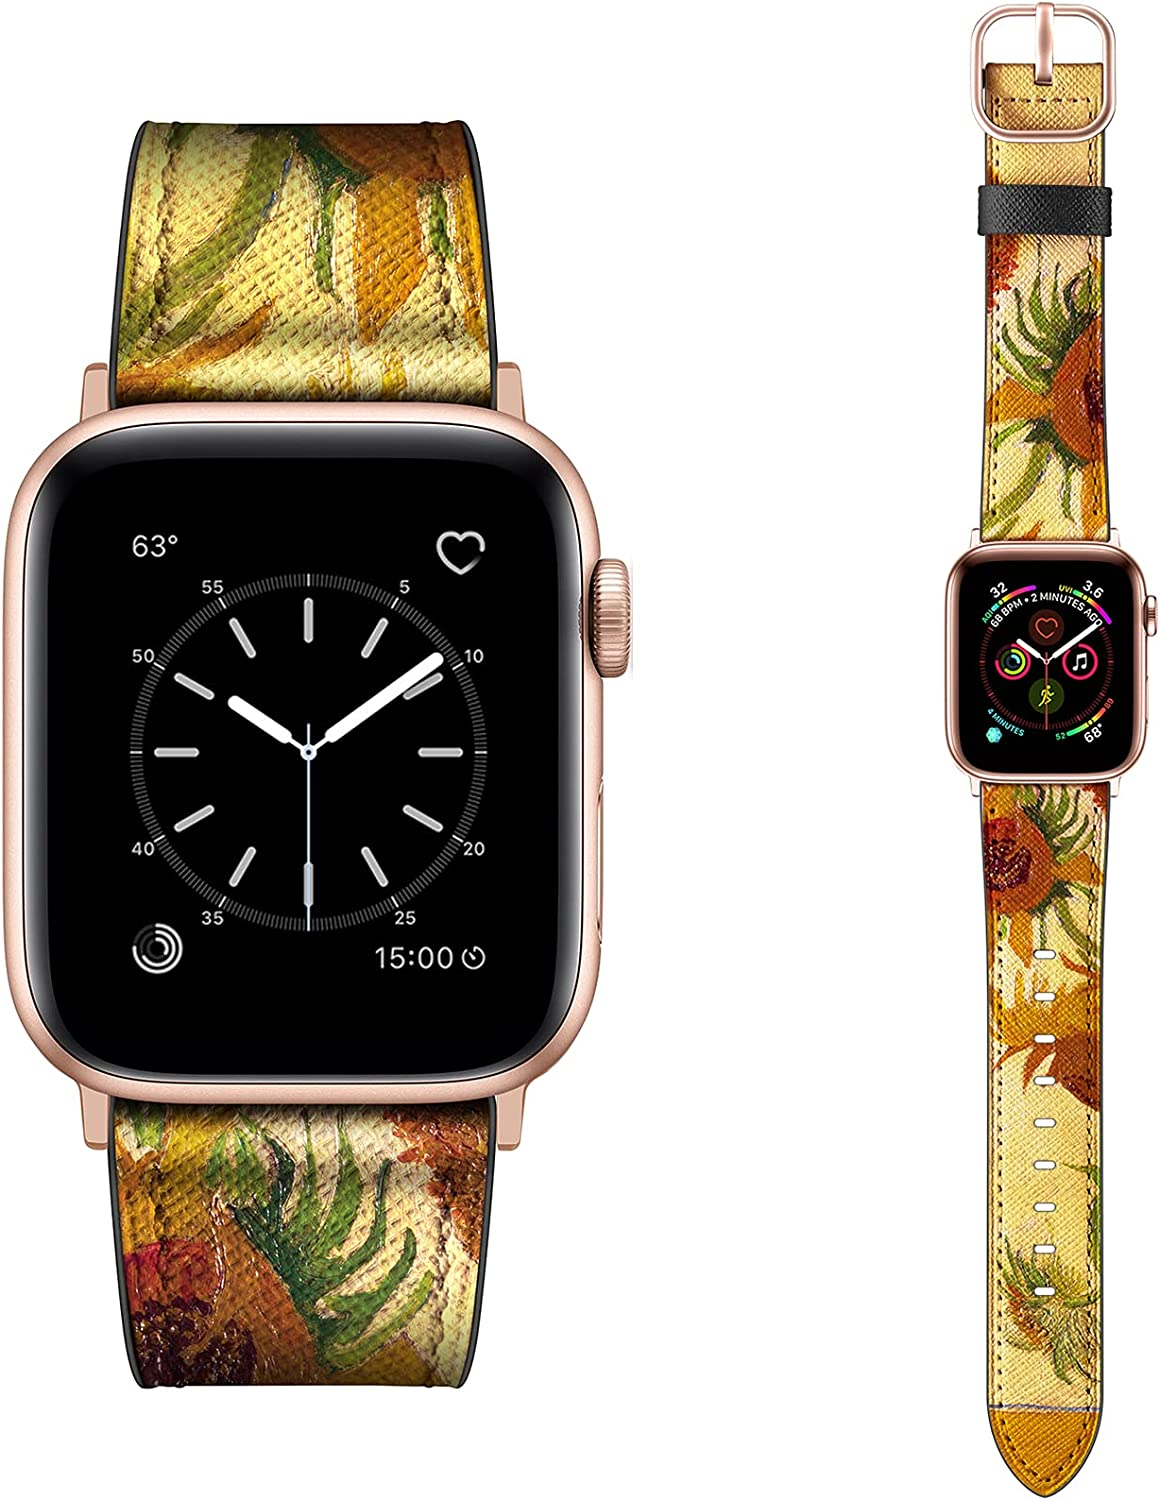 Dilando Leather Band Compatible with Apple Watch Loop Series 6 38mm 40mm Genuine Leather Vintage Colored Strap Classic Bracelet Buckle for iWatch SE Rose Gold 6 5 4 3 2 1 Women Yellow Sunflower